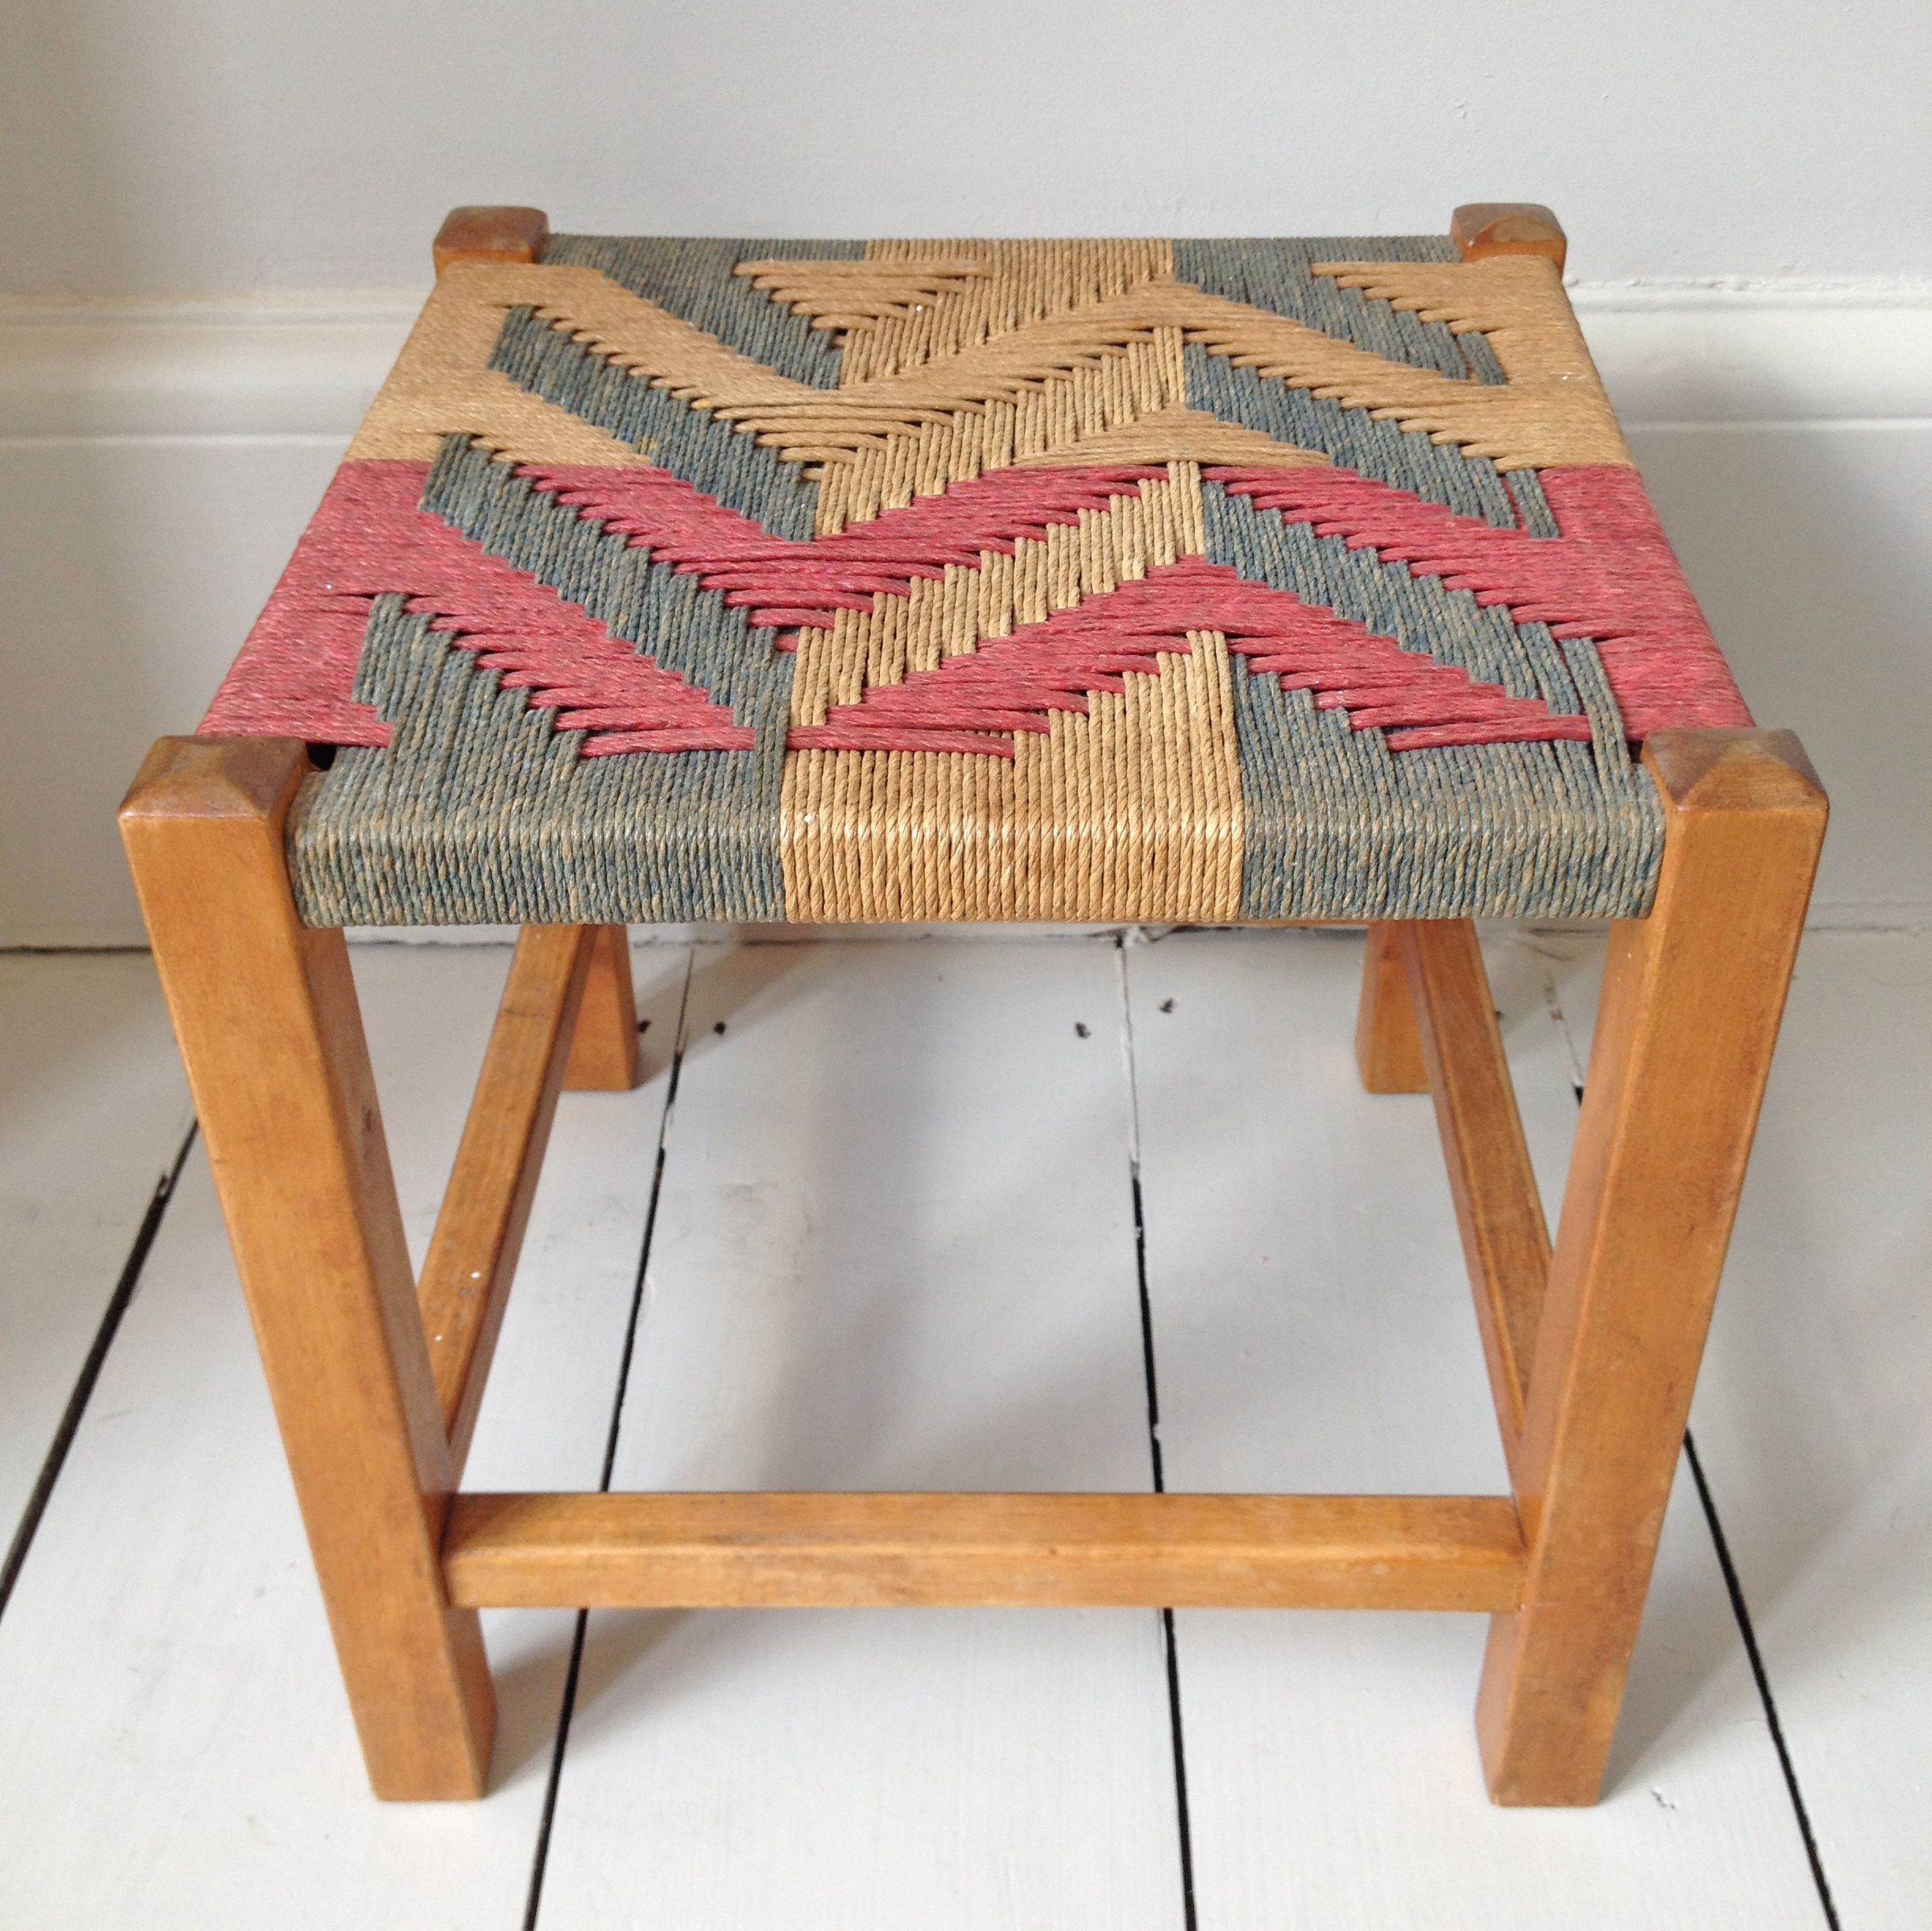 Terrific Woven Stool Aztec Small Stool With Wooden Legs And Great Ibusinesslaw Wood Chair Design Ideas Ibusinesslaworg